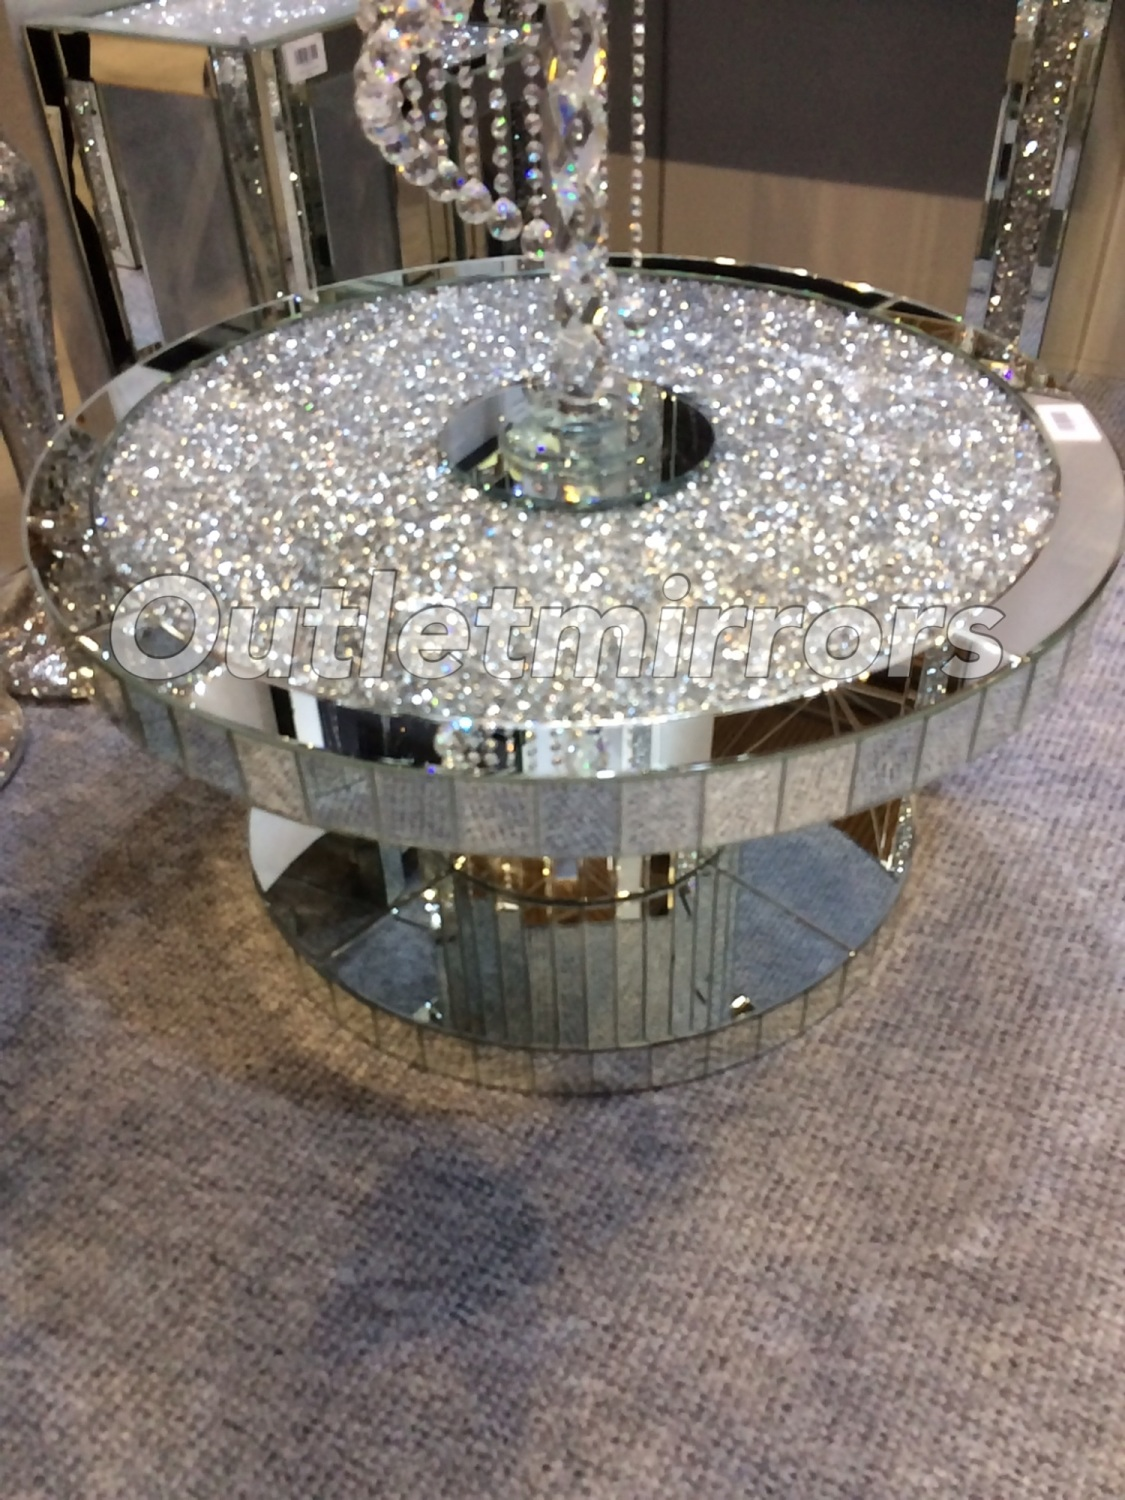 New Diamond Crush Sparkle Crystal Round Mirrored Coffee Table Out Of Stock For 12 Weeks